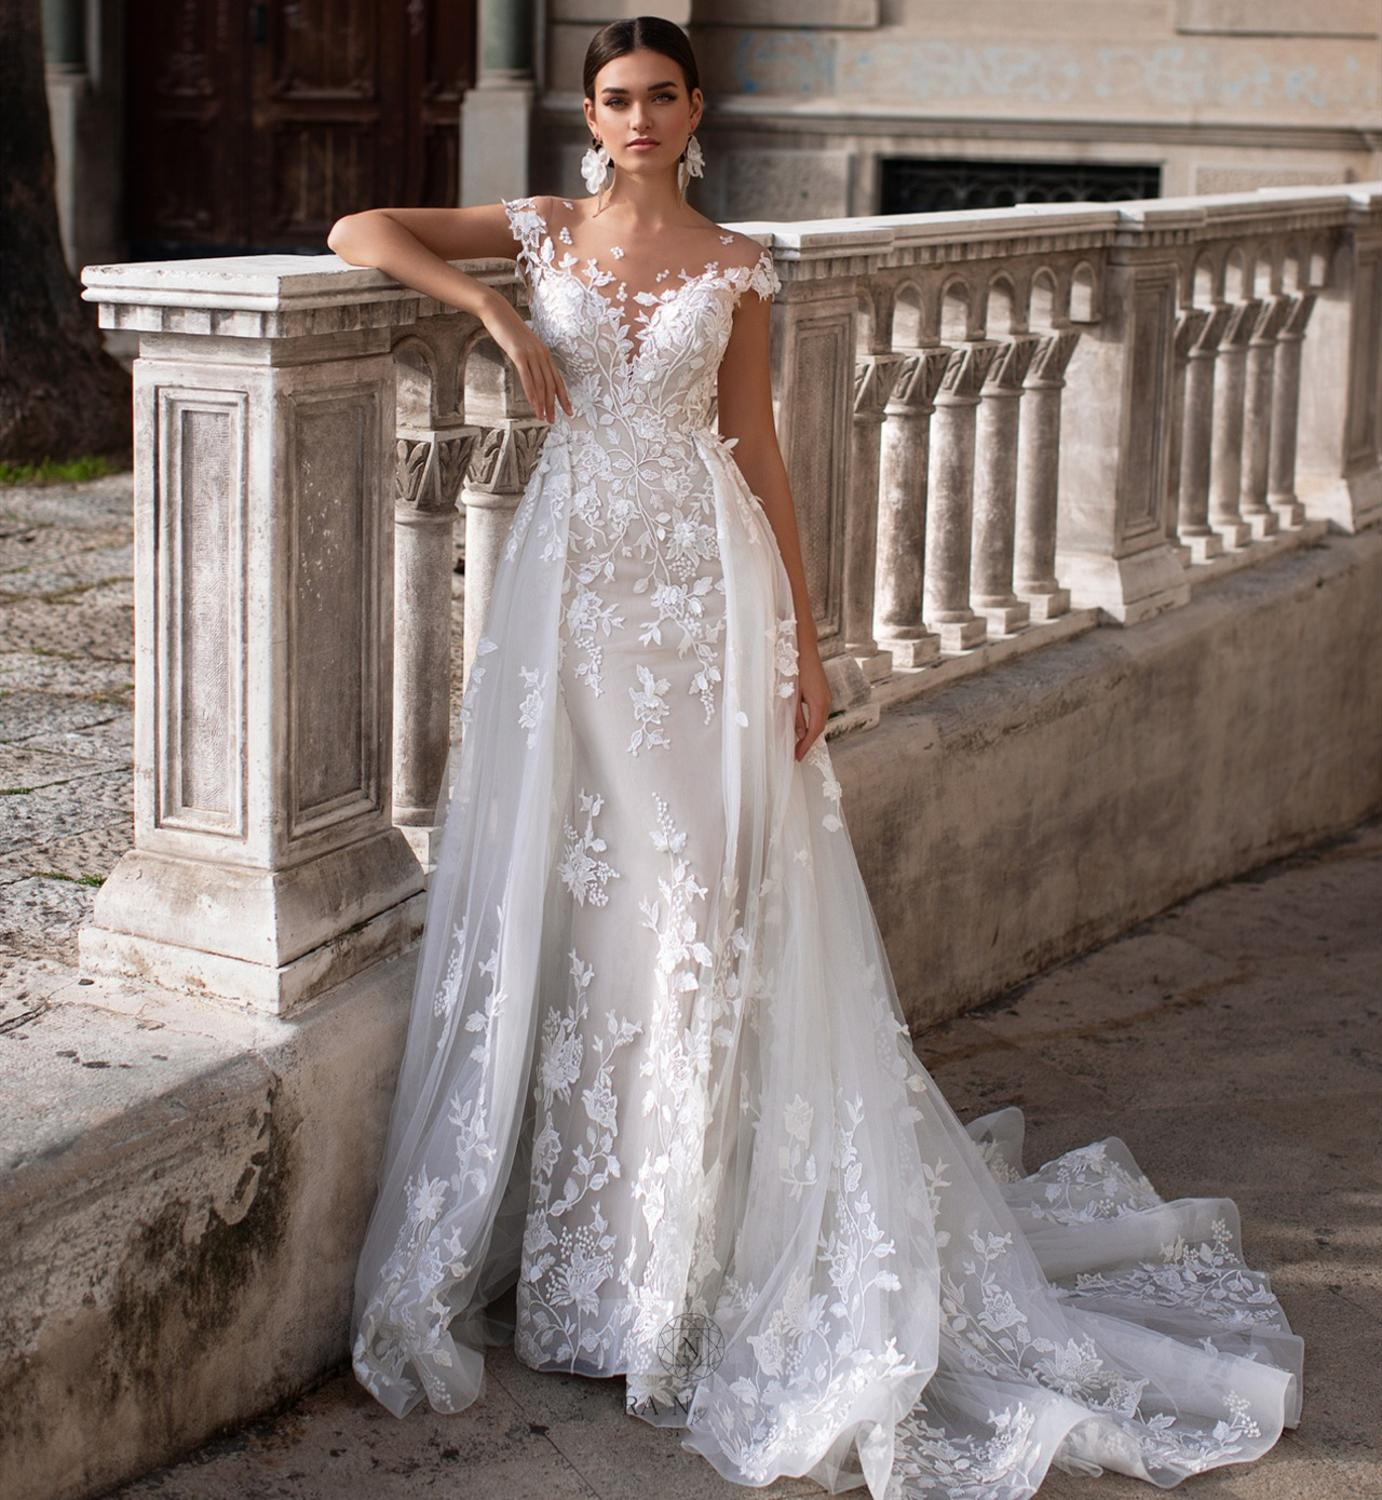 Vestido De Noiva New Overskirt Boho Wedding Dress 2020 O-Neck Chaple Train Appliques Tulle Bride Gowns Robe De Mariee